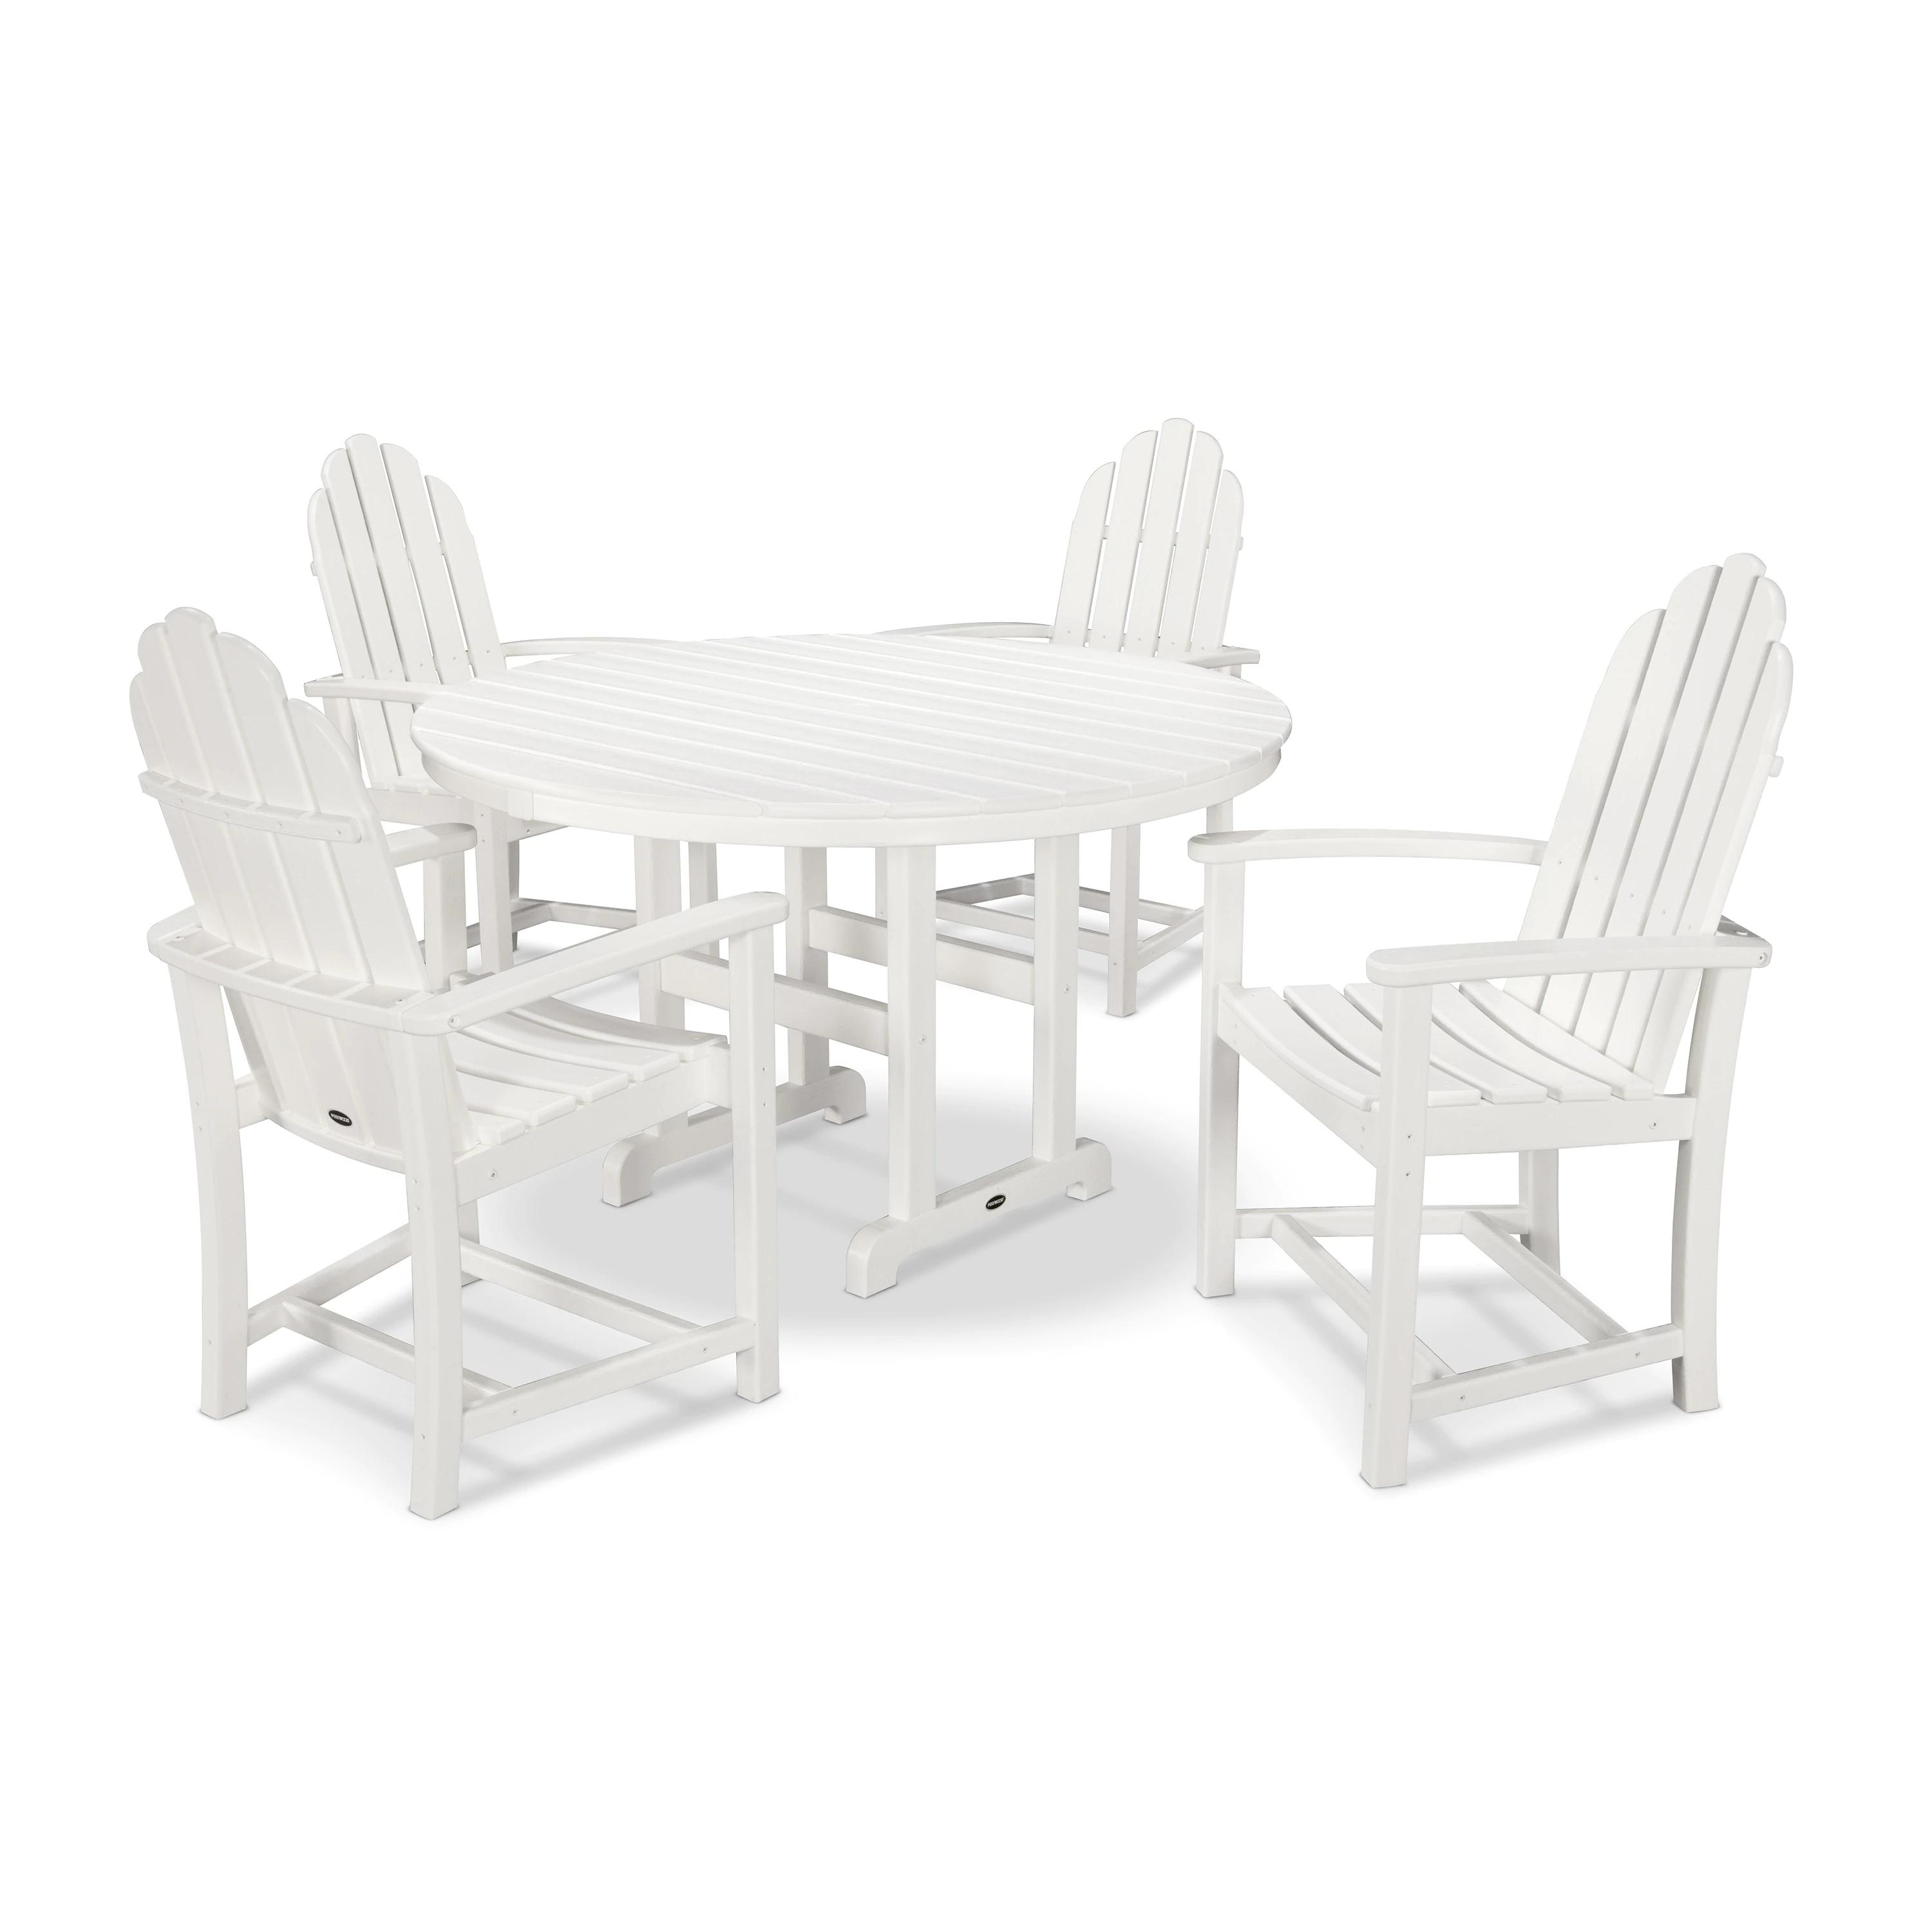 POLYWOOD Classic 5-Piece Outdoor Adirondack Chair Dining Set